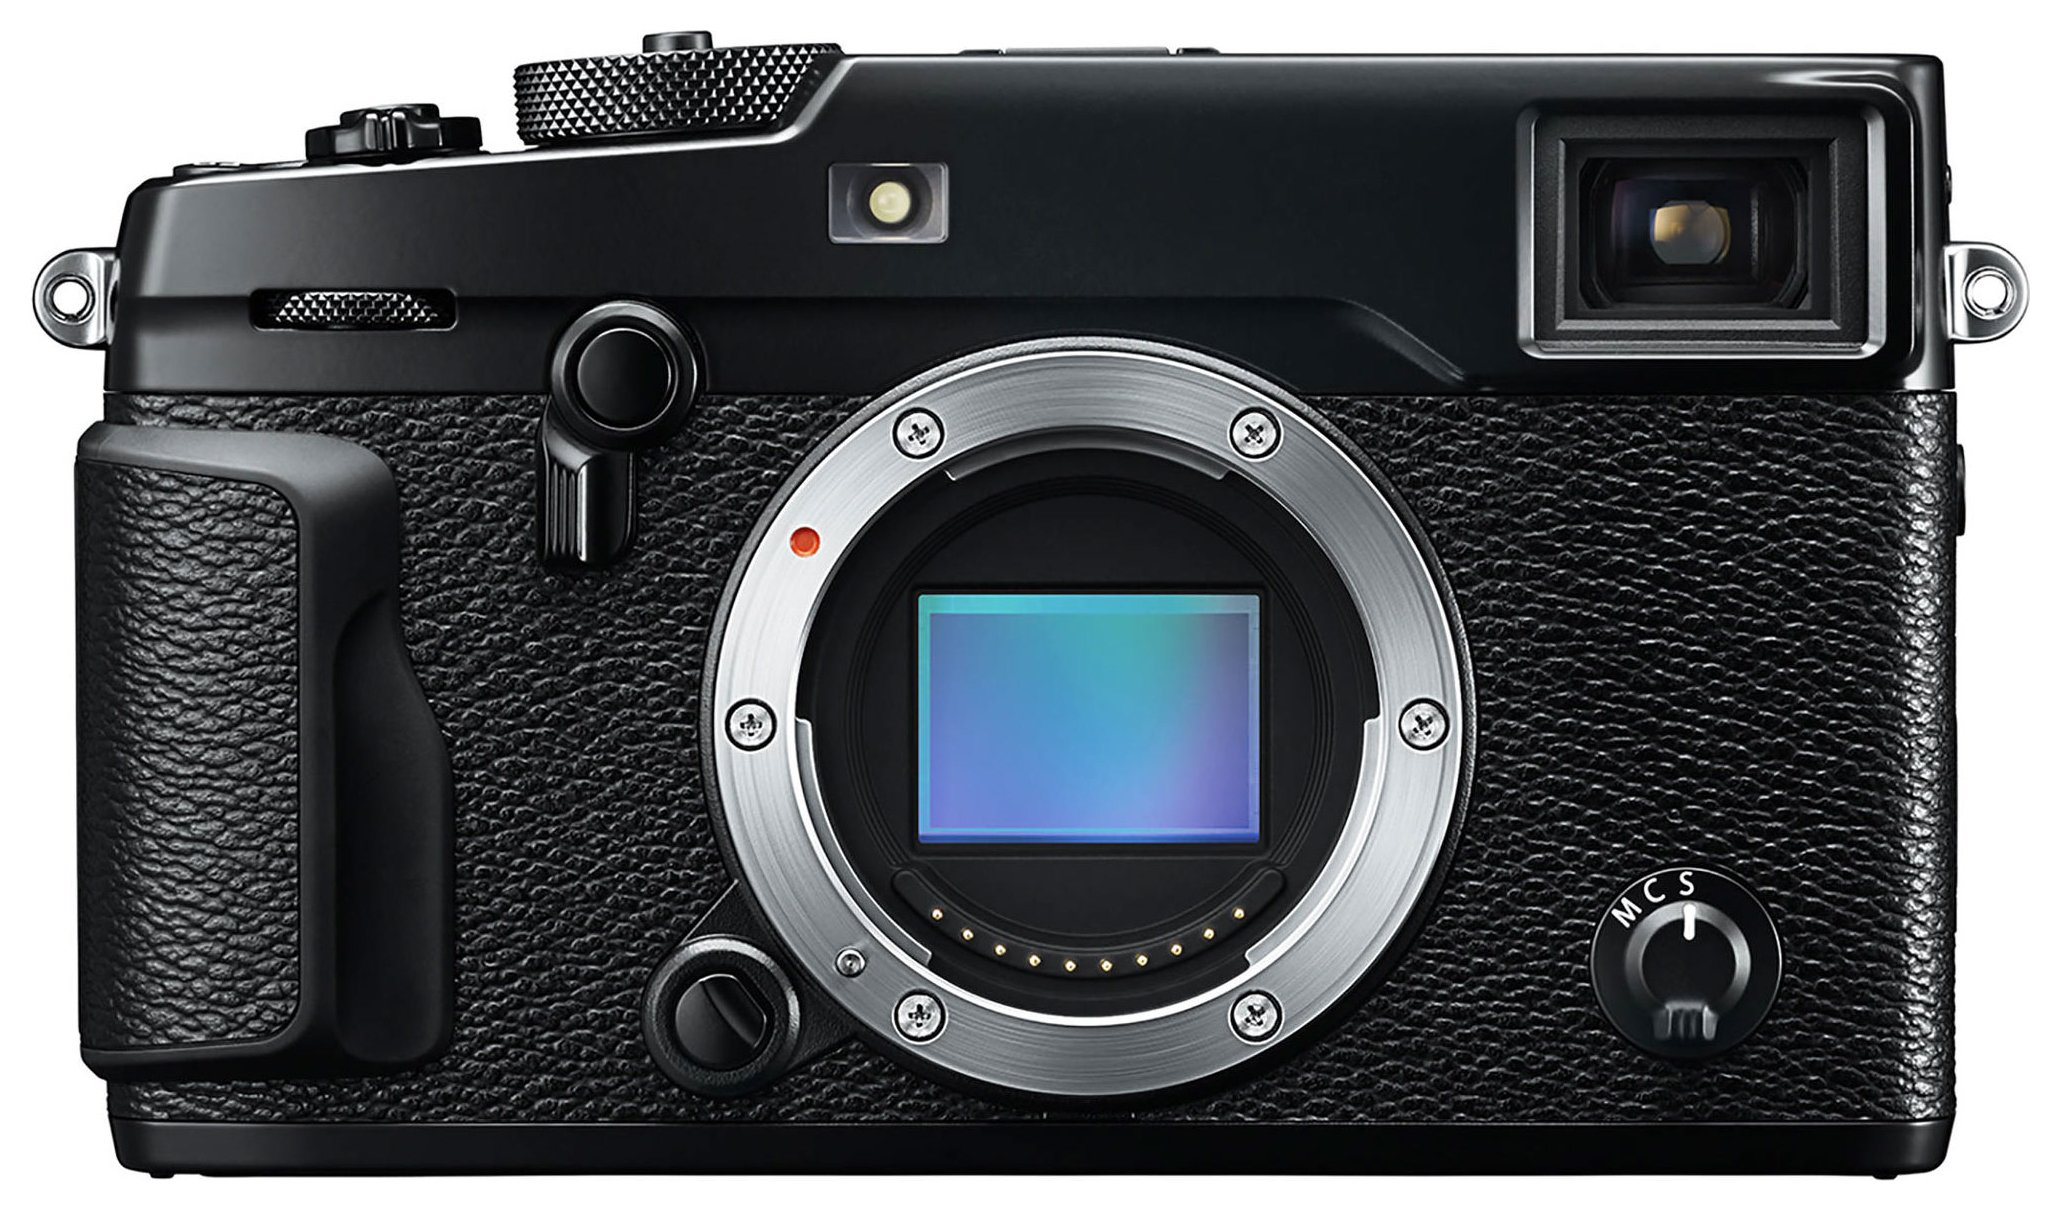 Image of Fujifilm - X Pro2 - Digital - Compact - Digital Camera Body Only